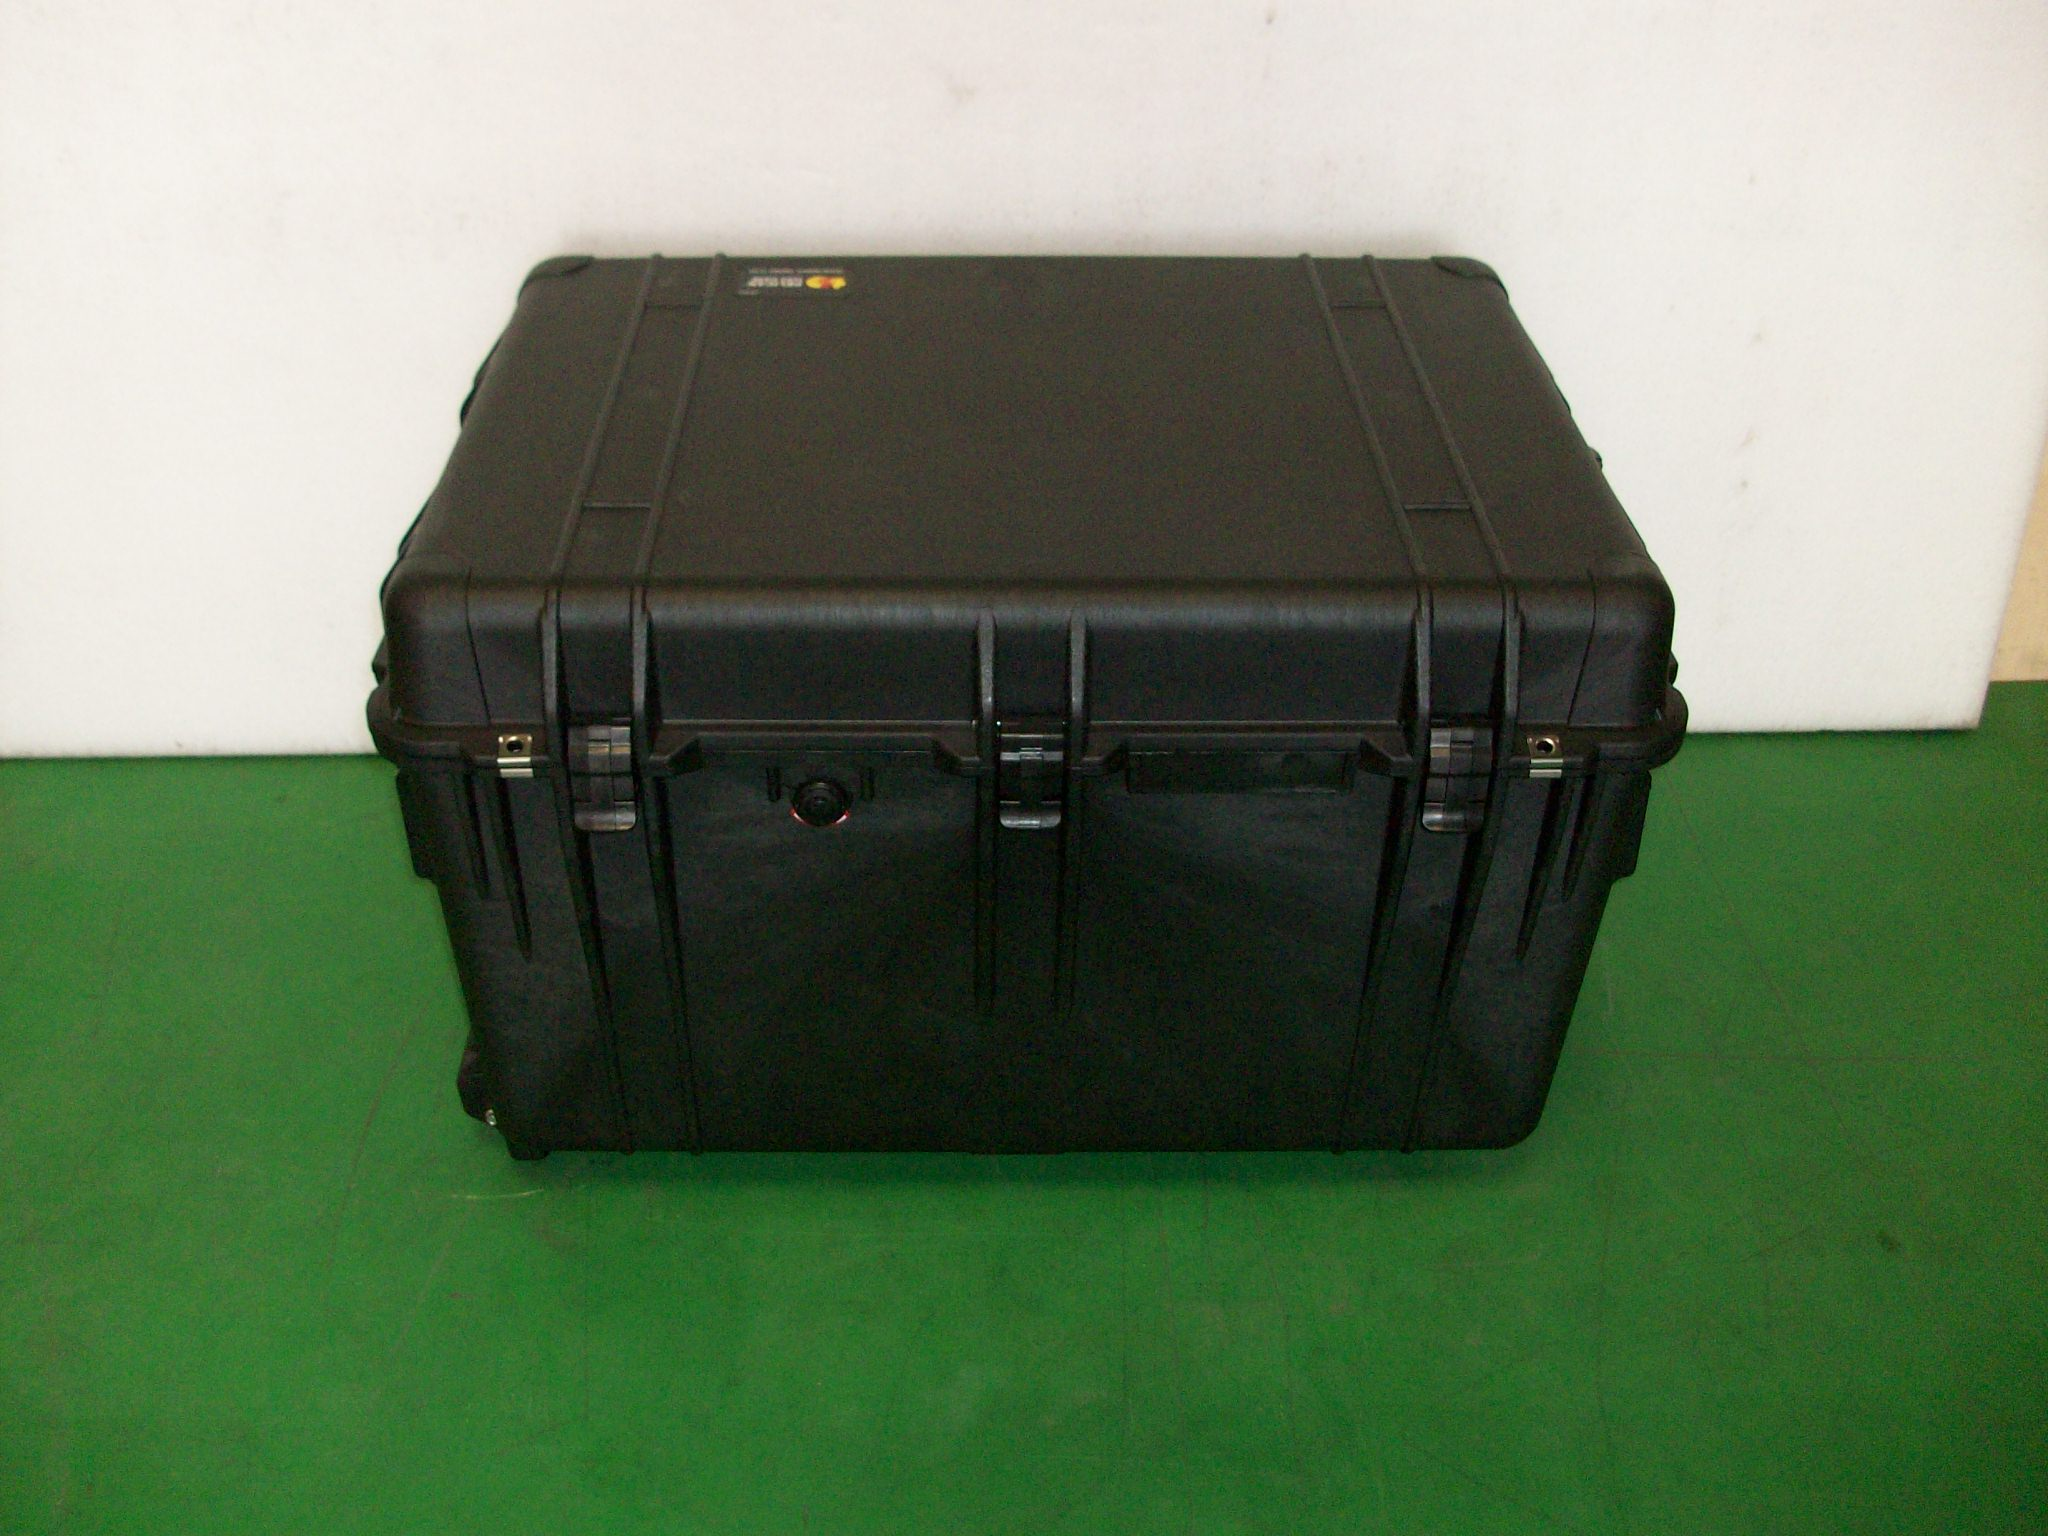 Print # 6431 - Pelican 1660 Case for (1) Sony PVM2541 Unit By Nelson Case Corp